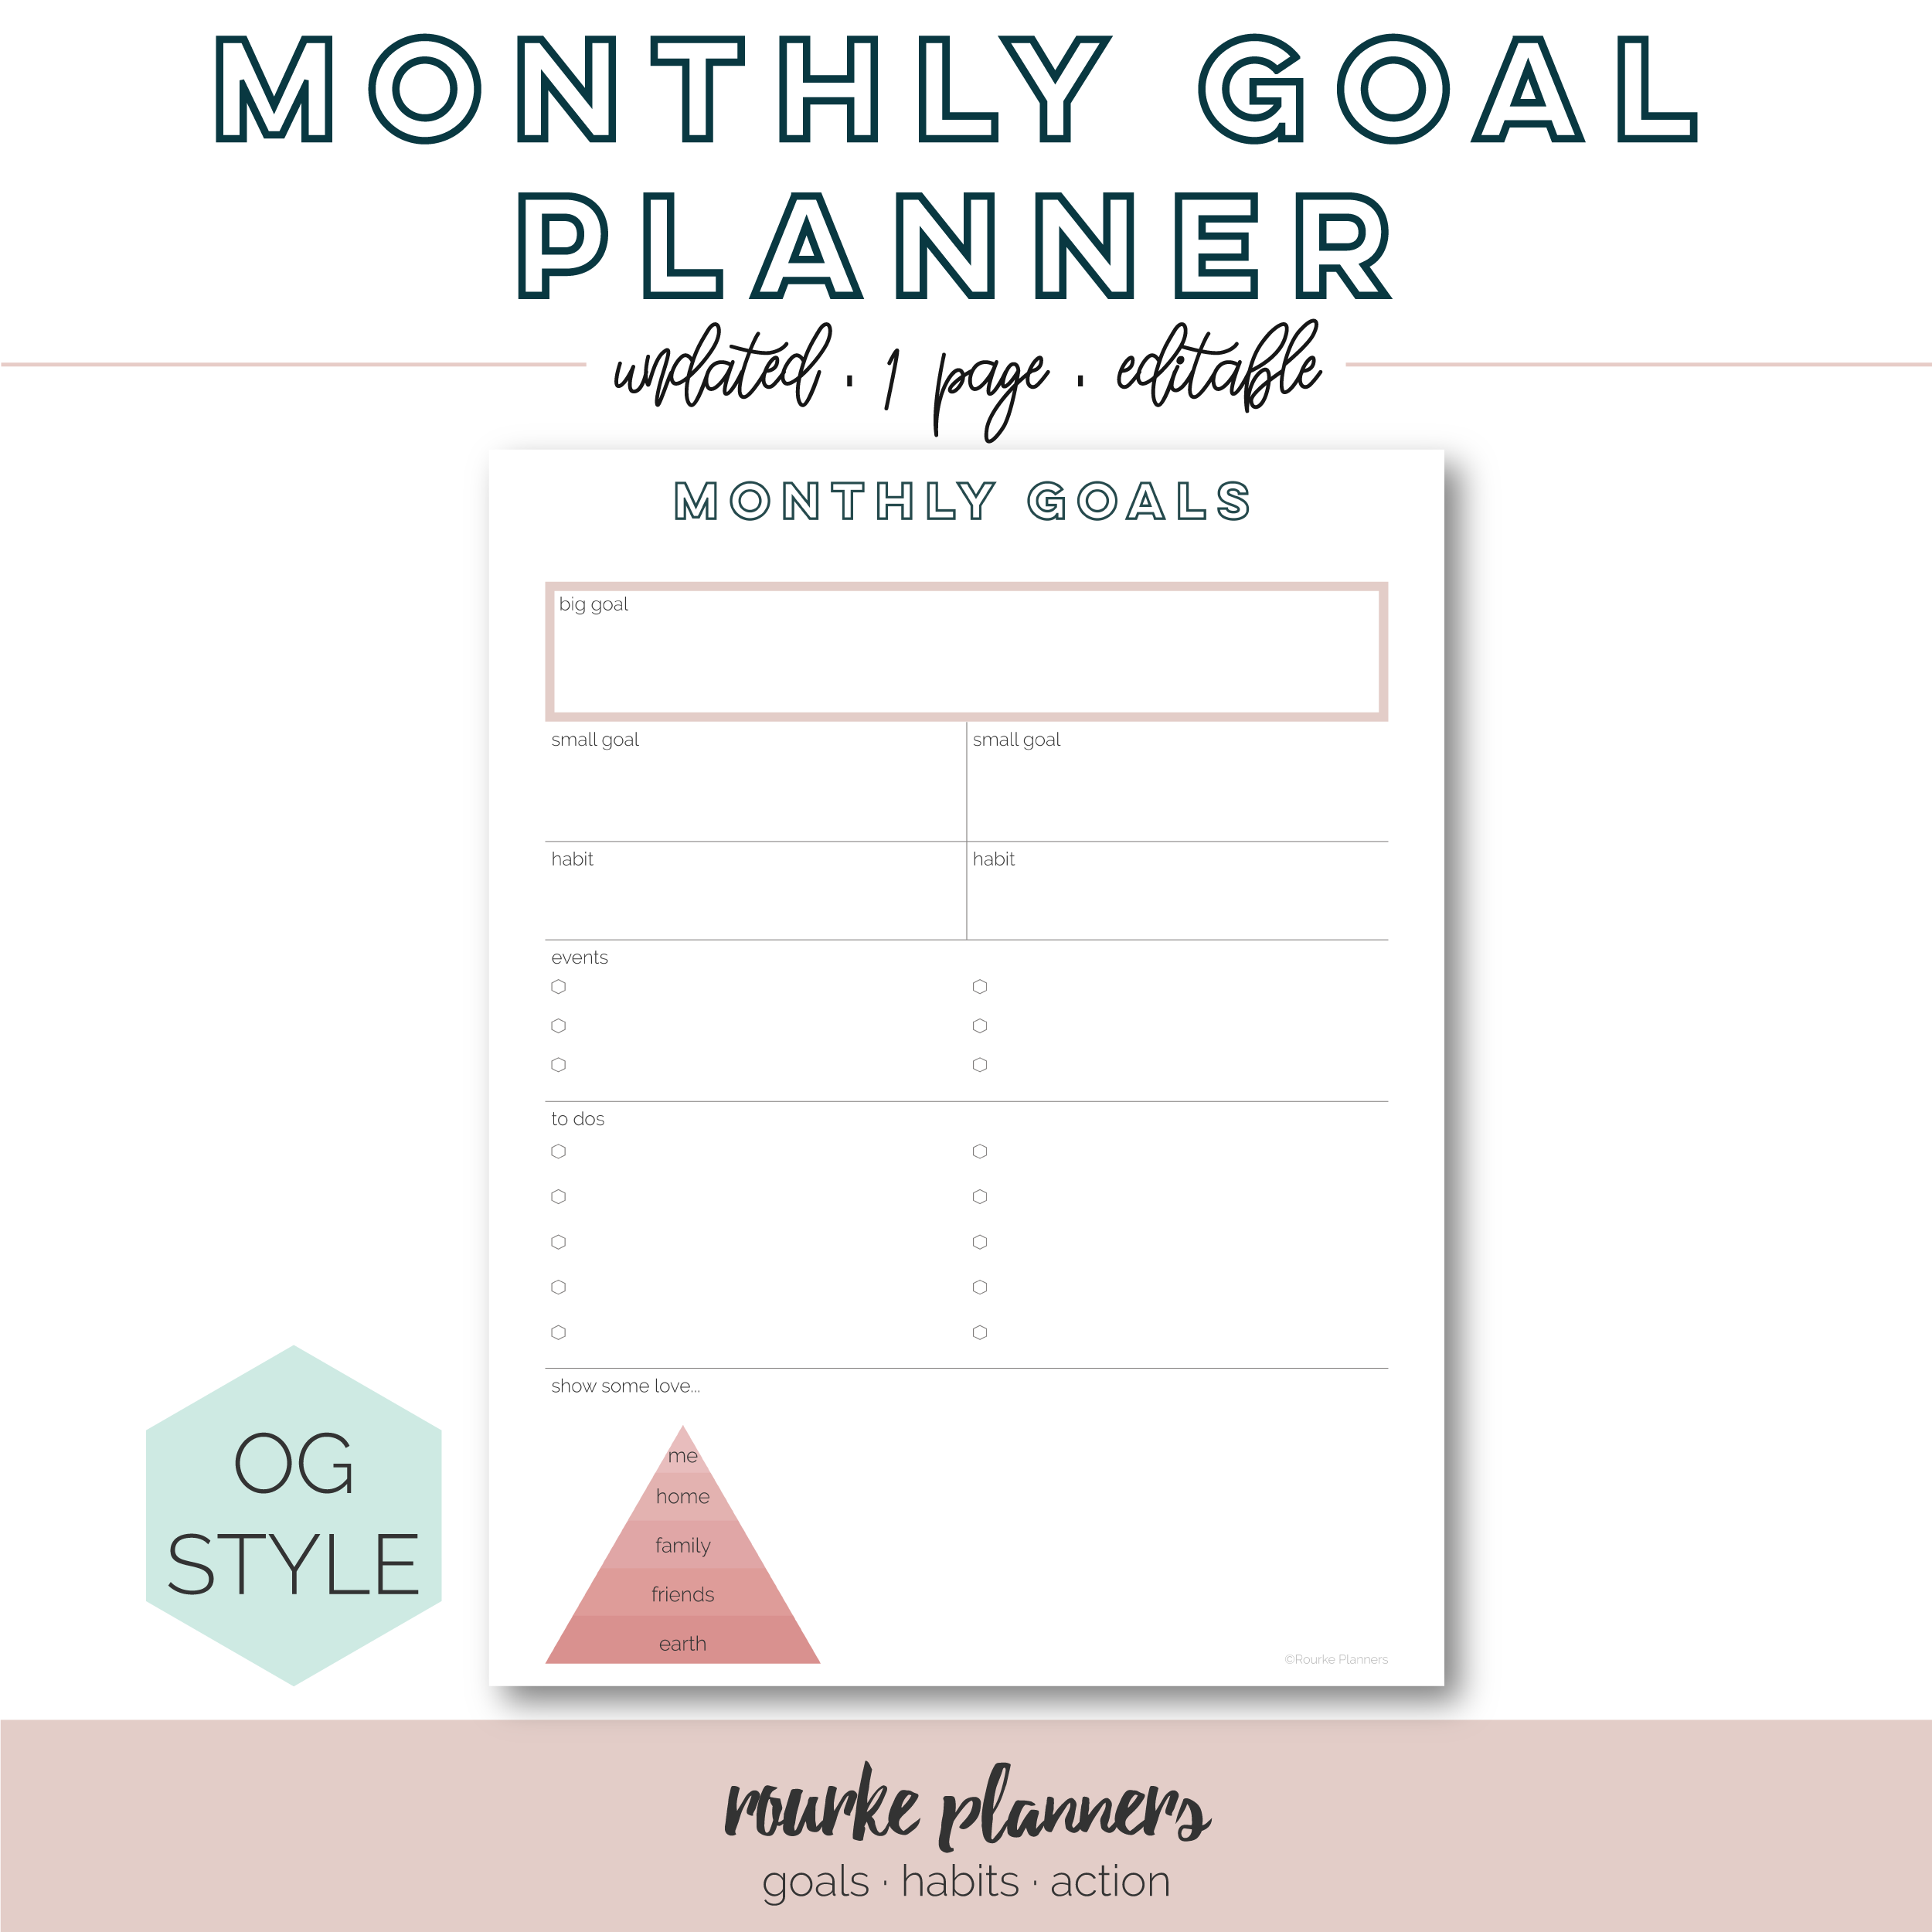 Monthly Goal Planner Free Printable | Rourke Planners